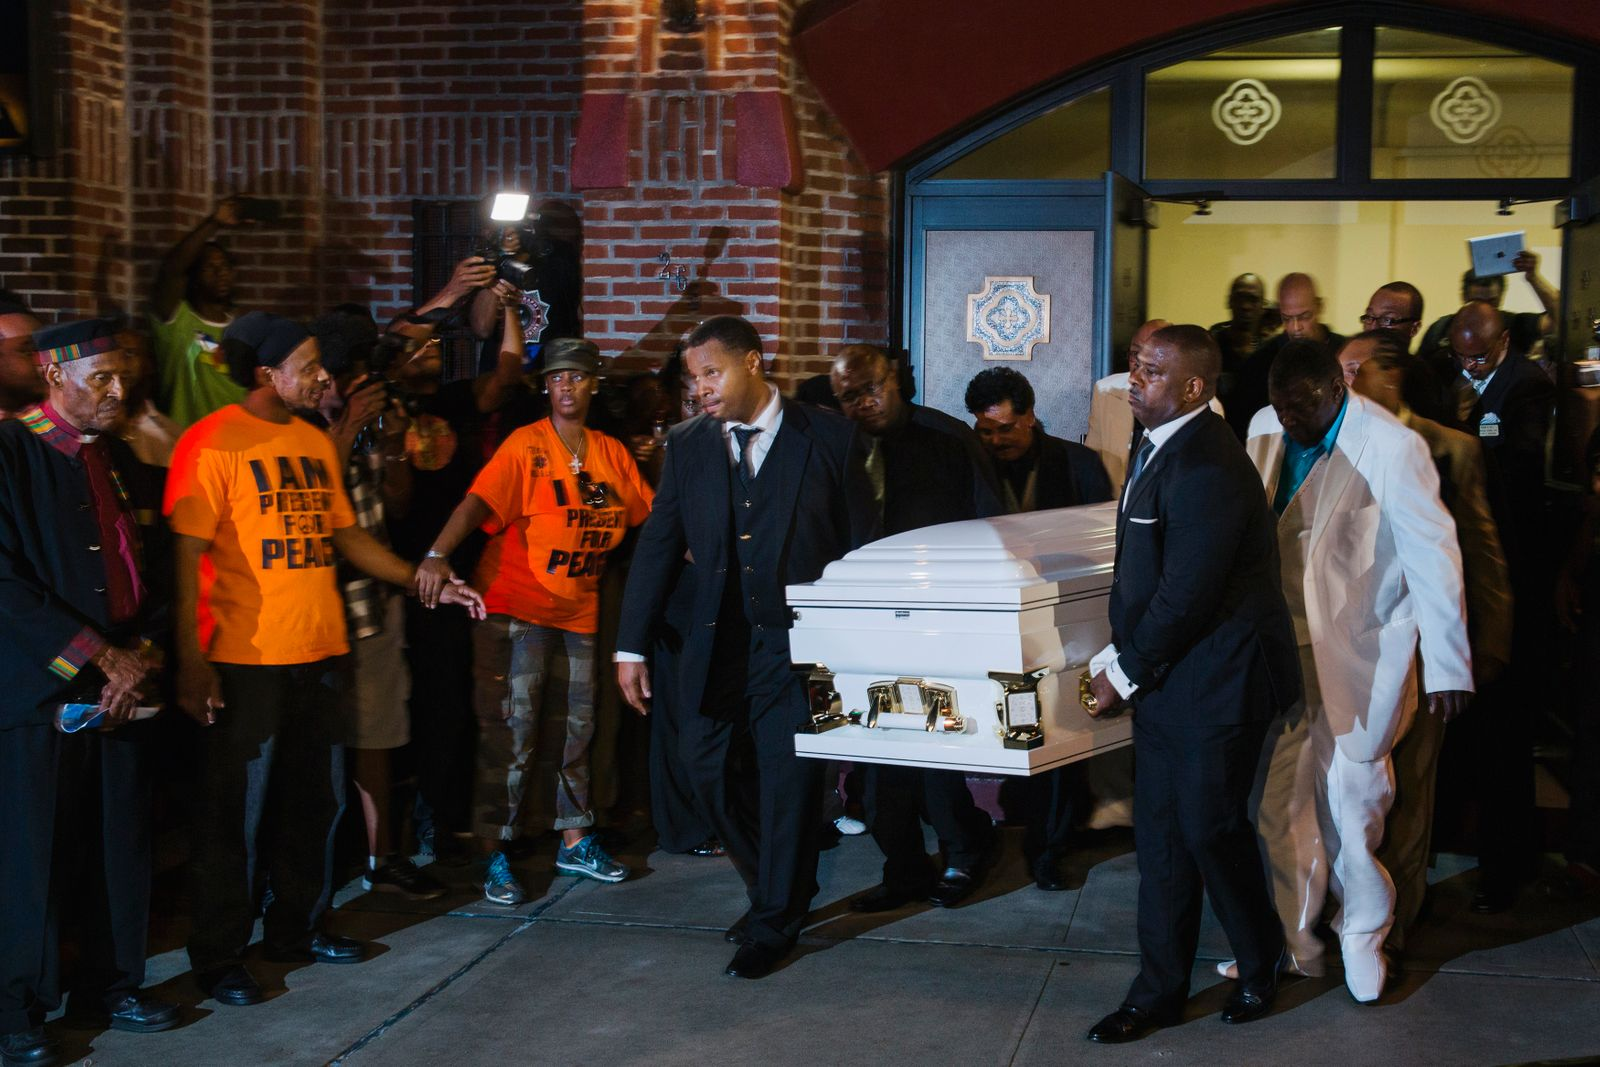 Pallbearers carry the casket of Garner out of the Bethel Baptist Church following his funeral in New York